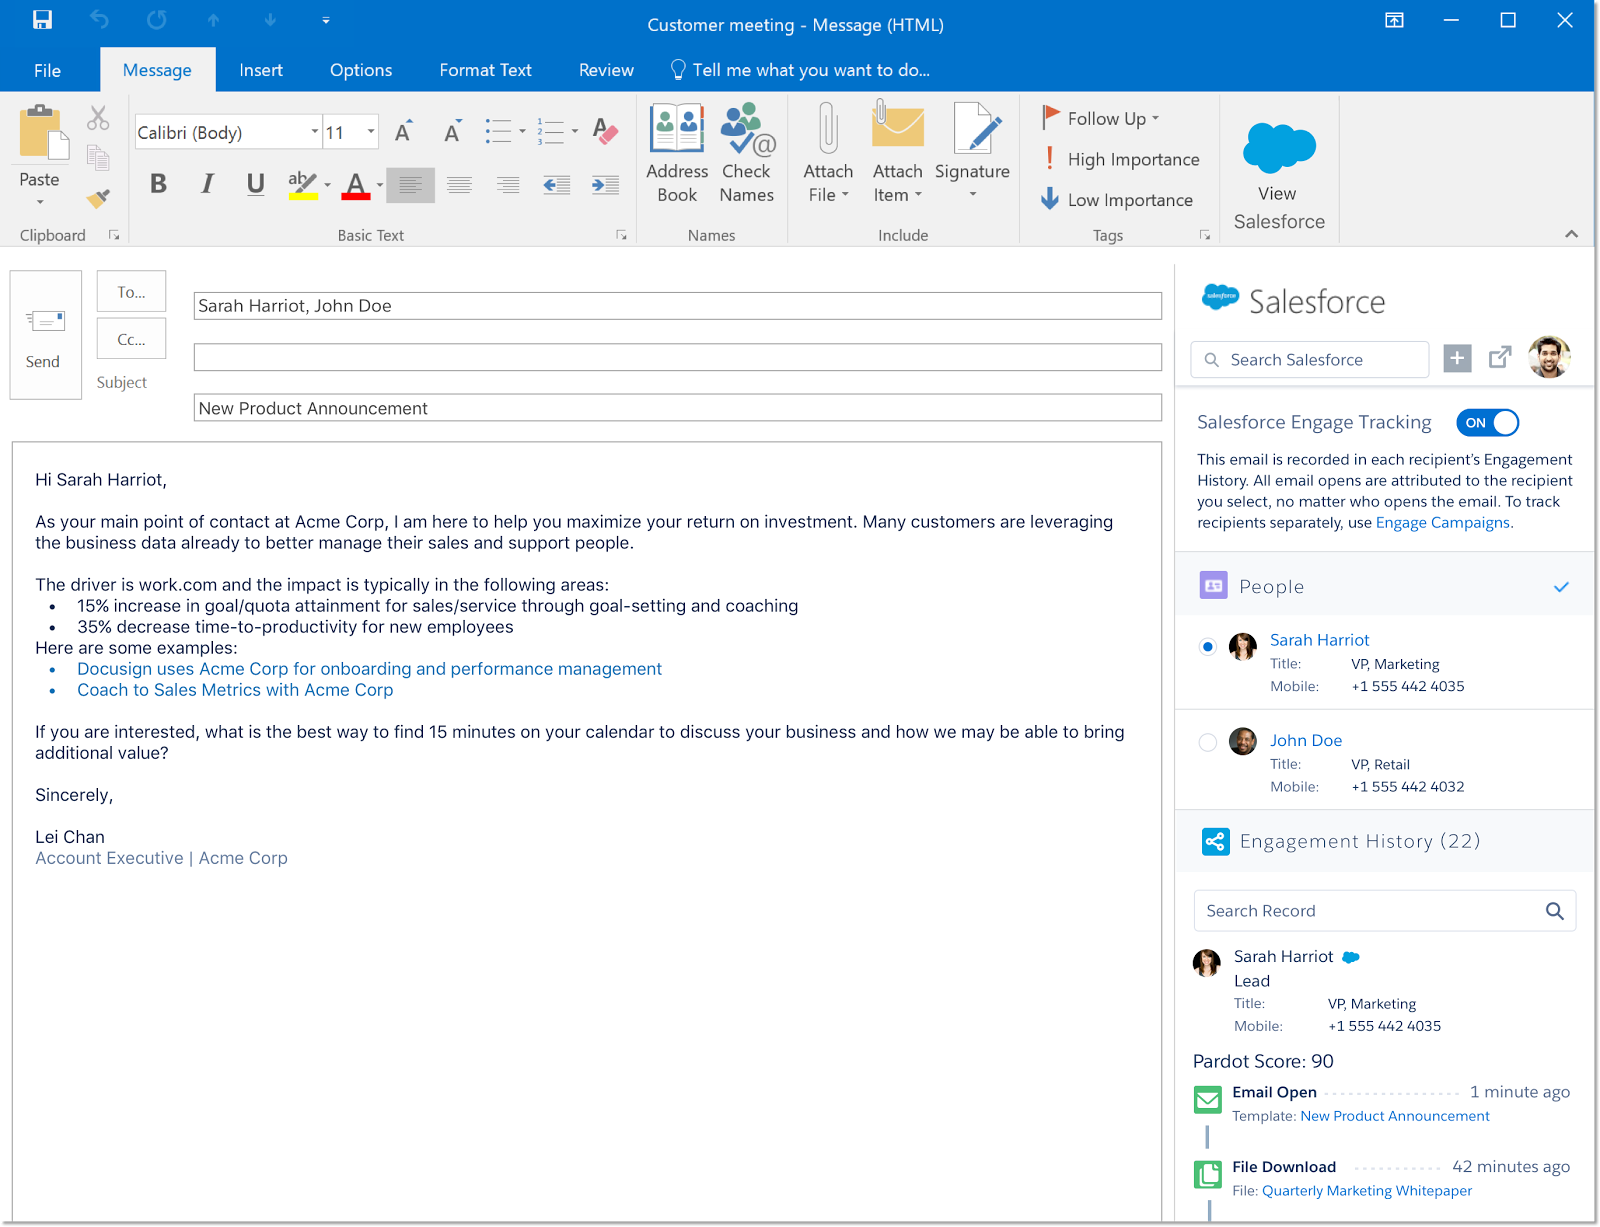 [Salesforce Engage Options (Salesforce Engage オプション)] を表示する Engage for Outlook